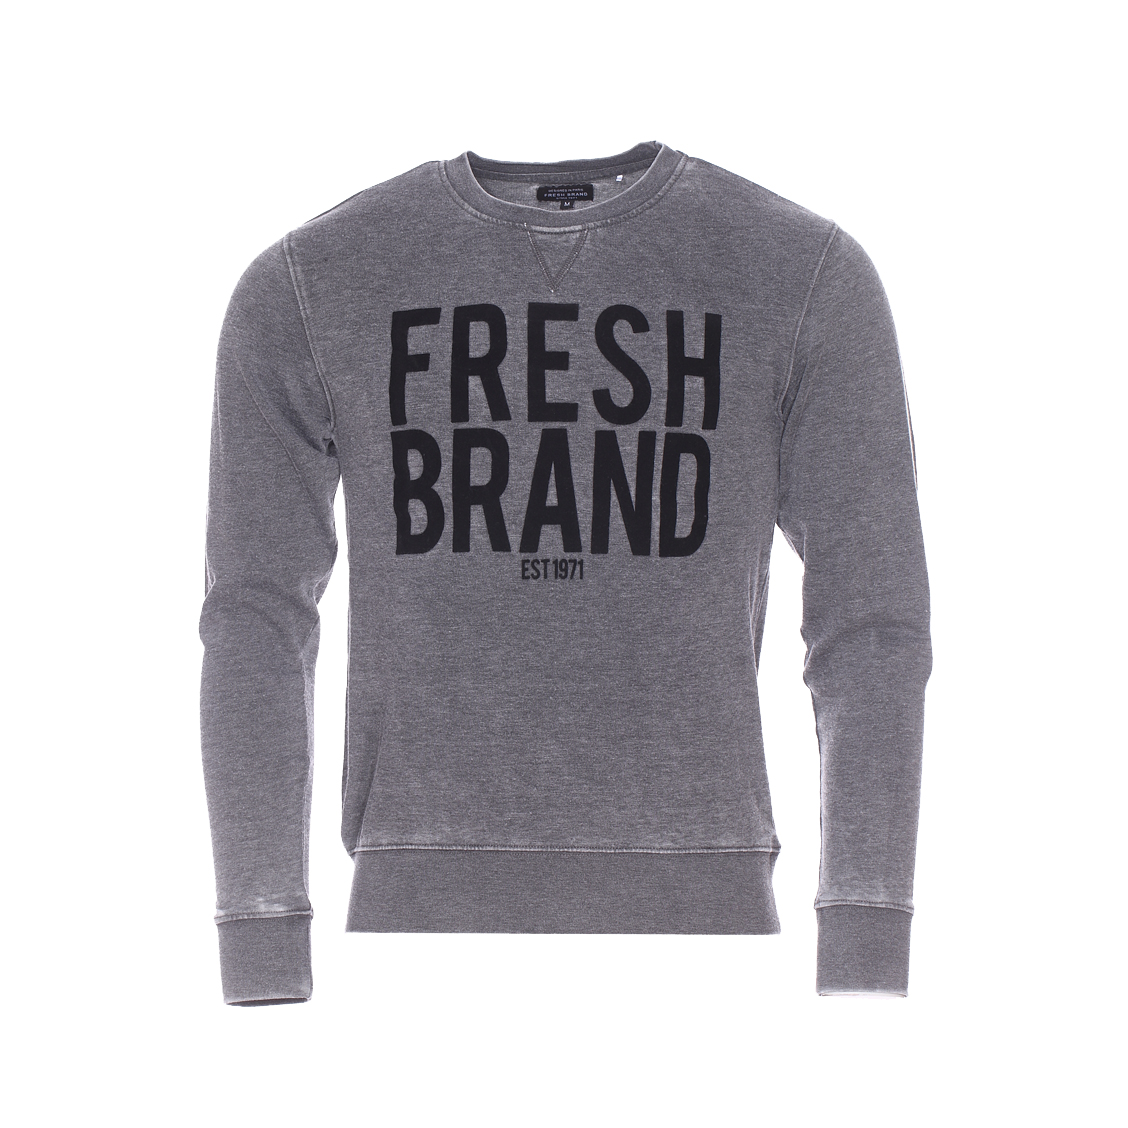 Sweat The Fresh Brand gris vintage floqué en velours noir